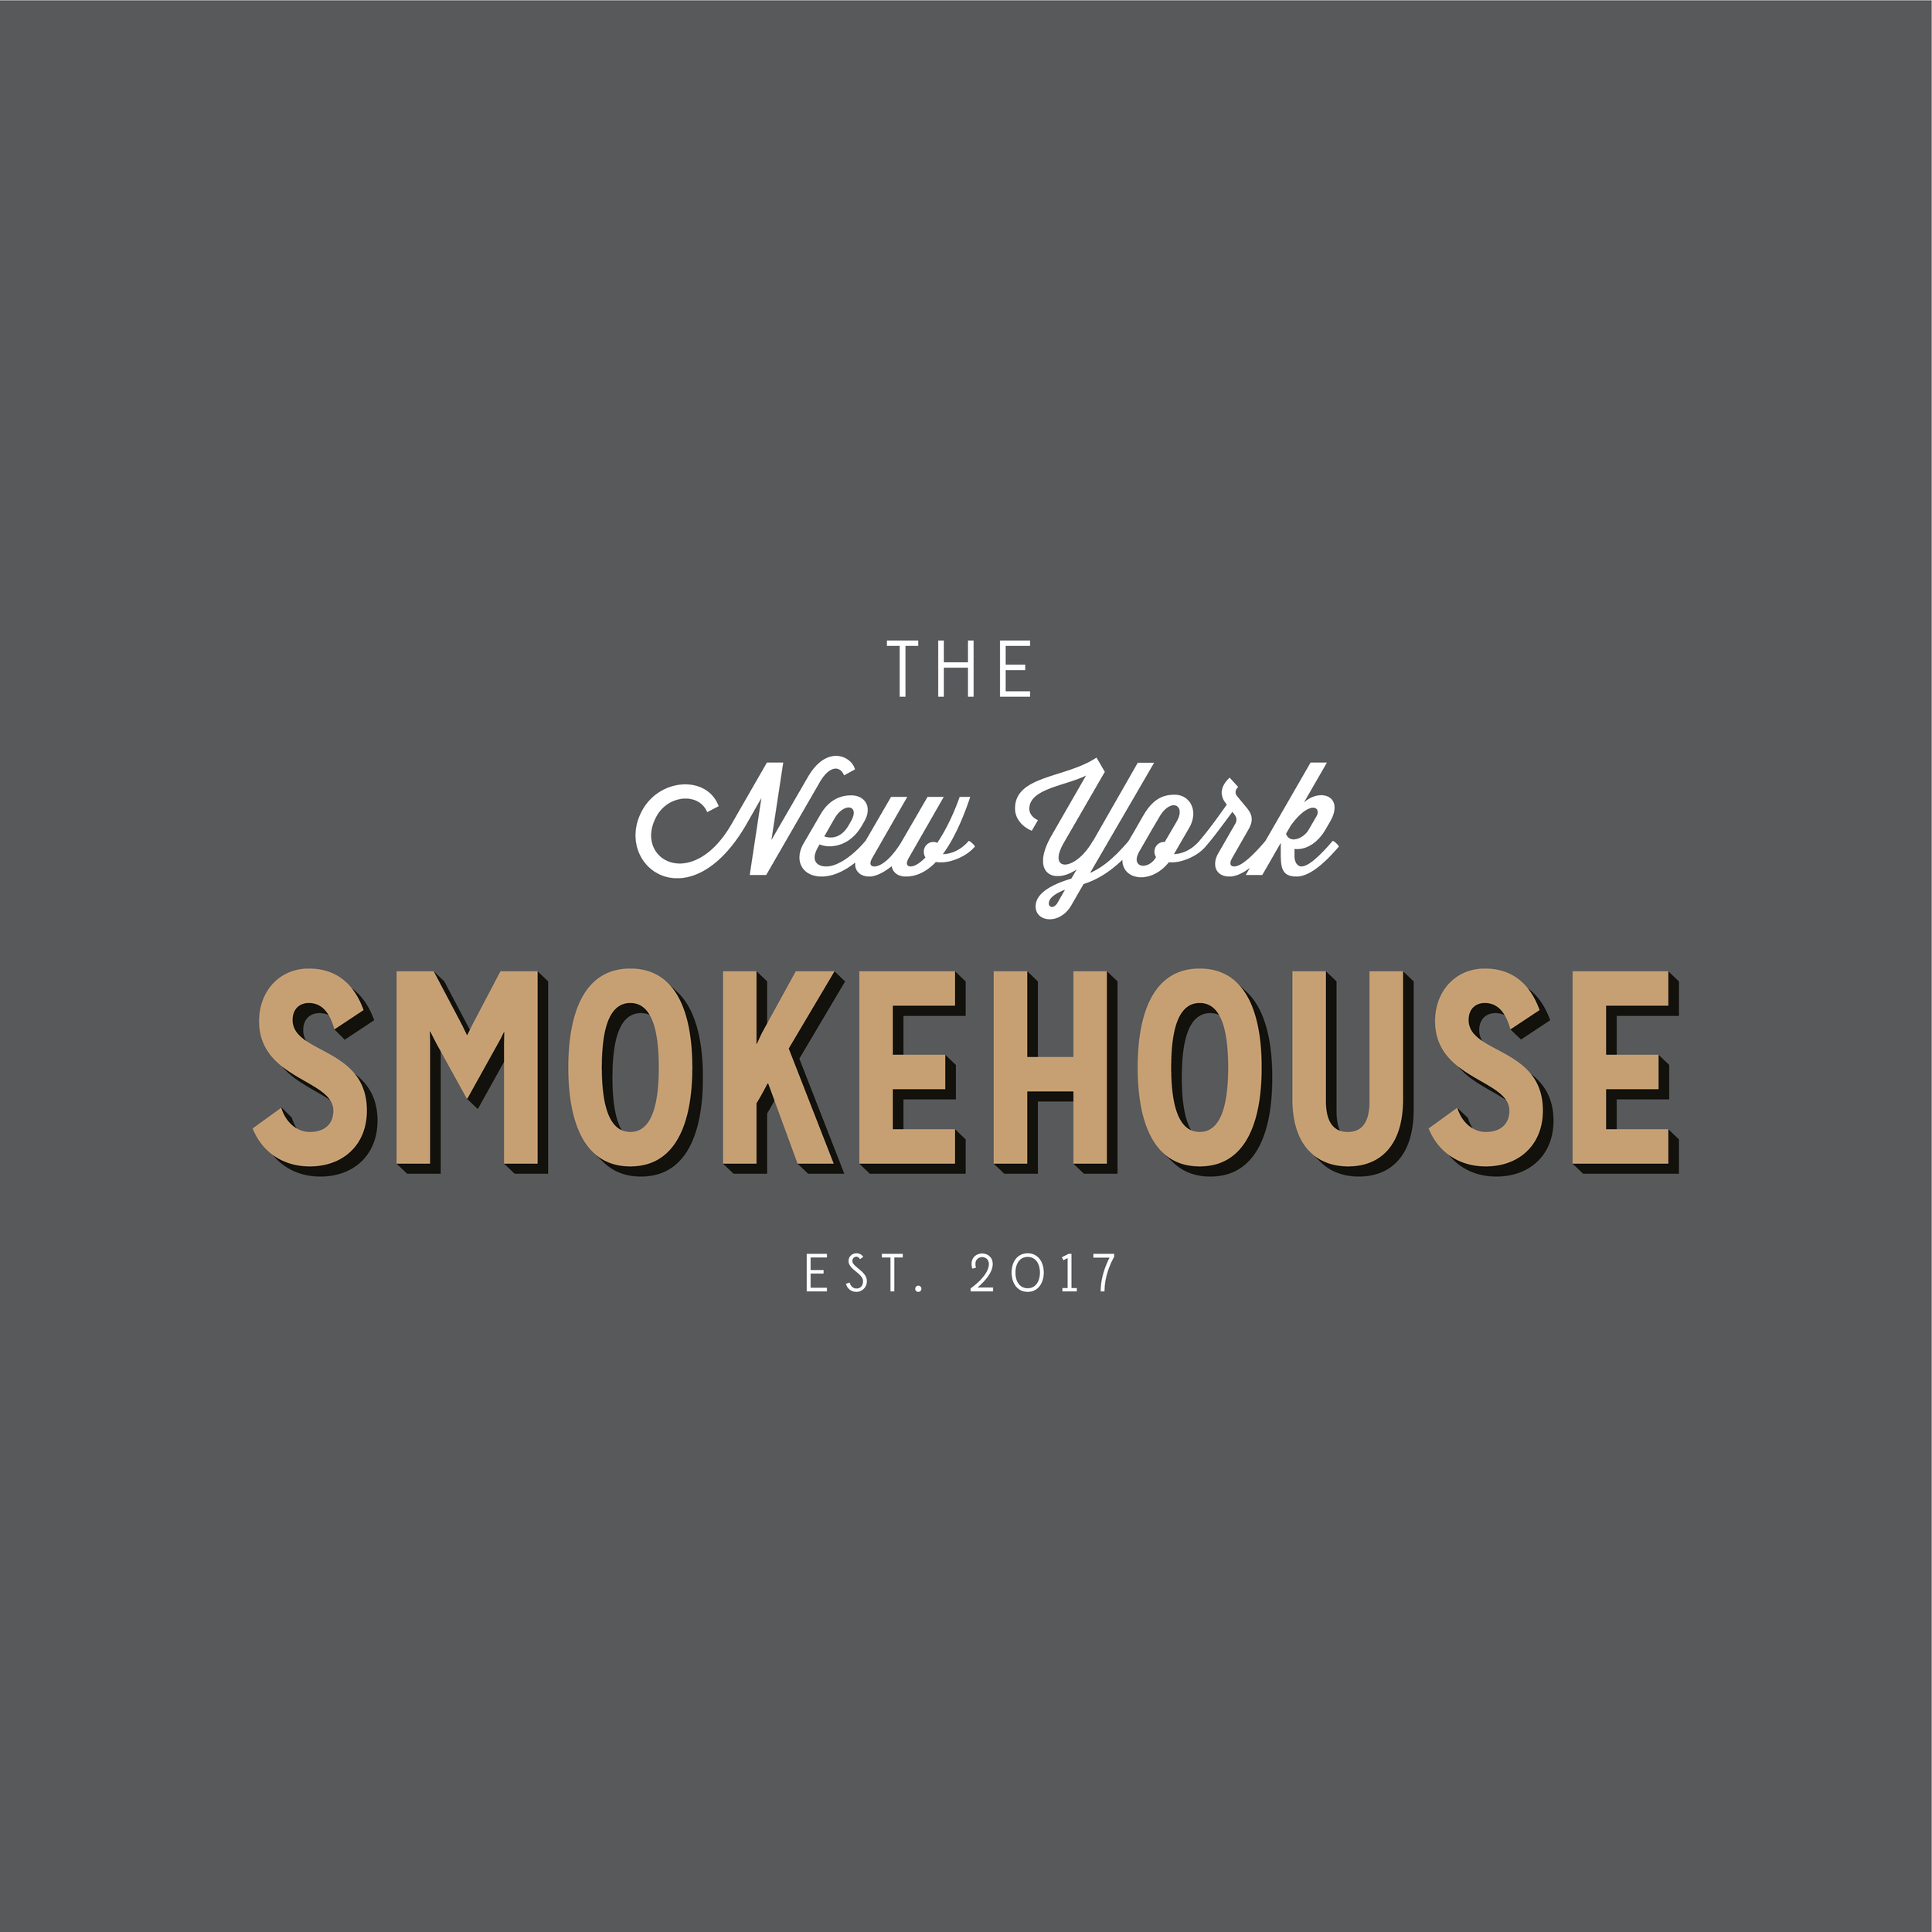 The New York Smokehouse_Instagram-02.png